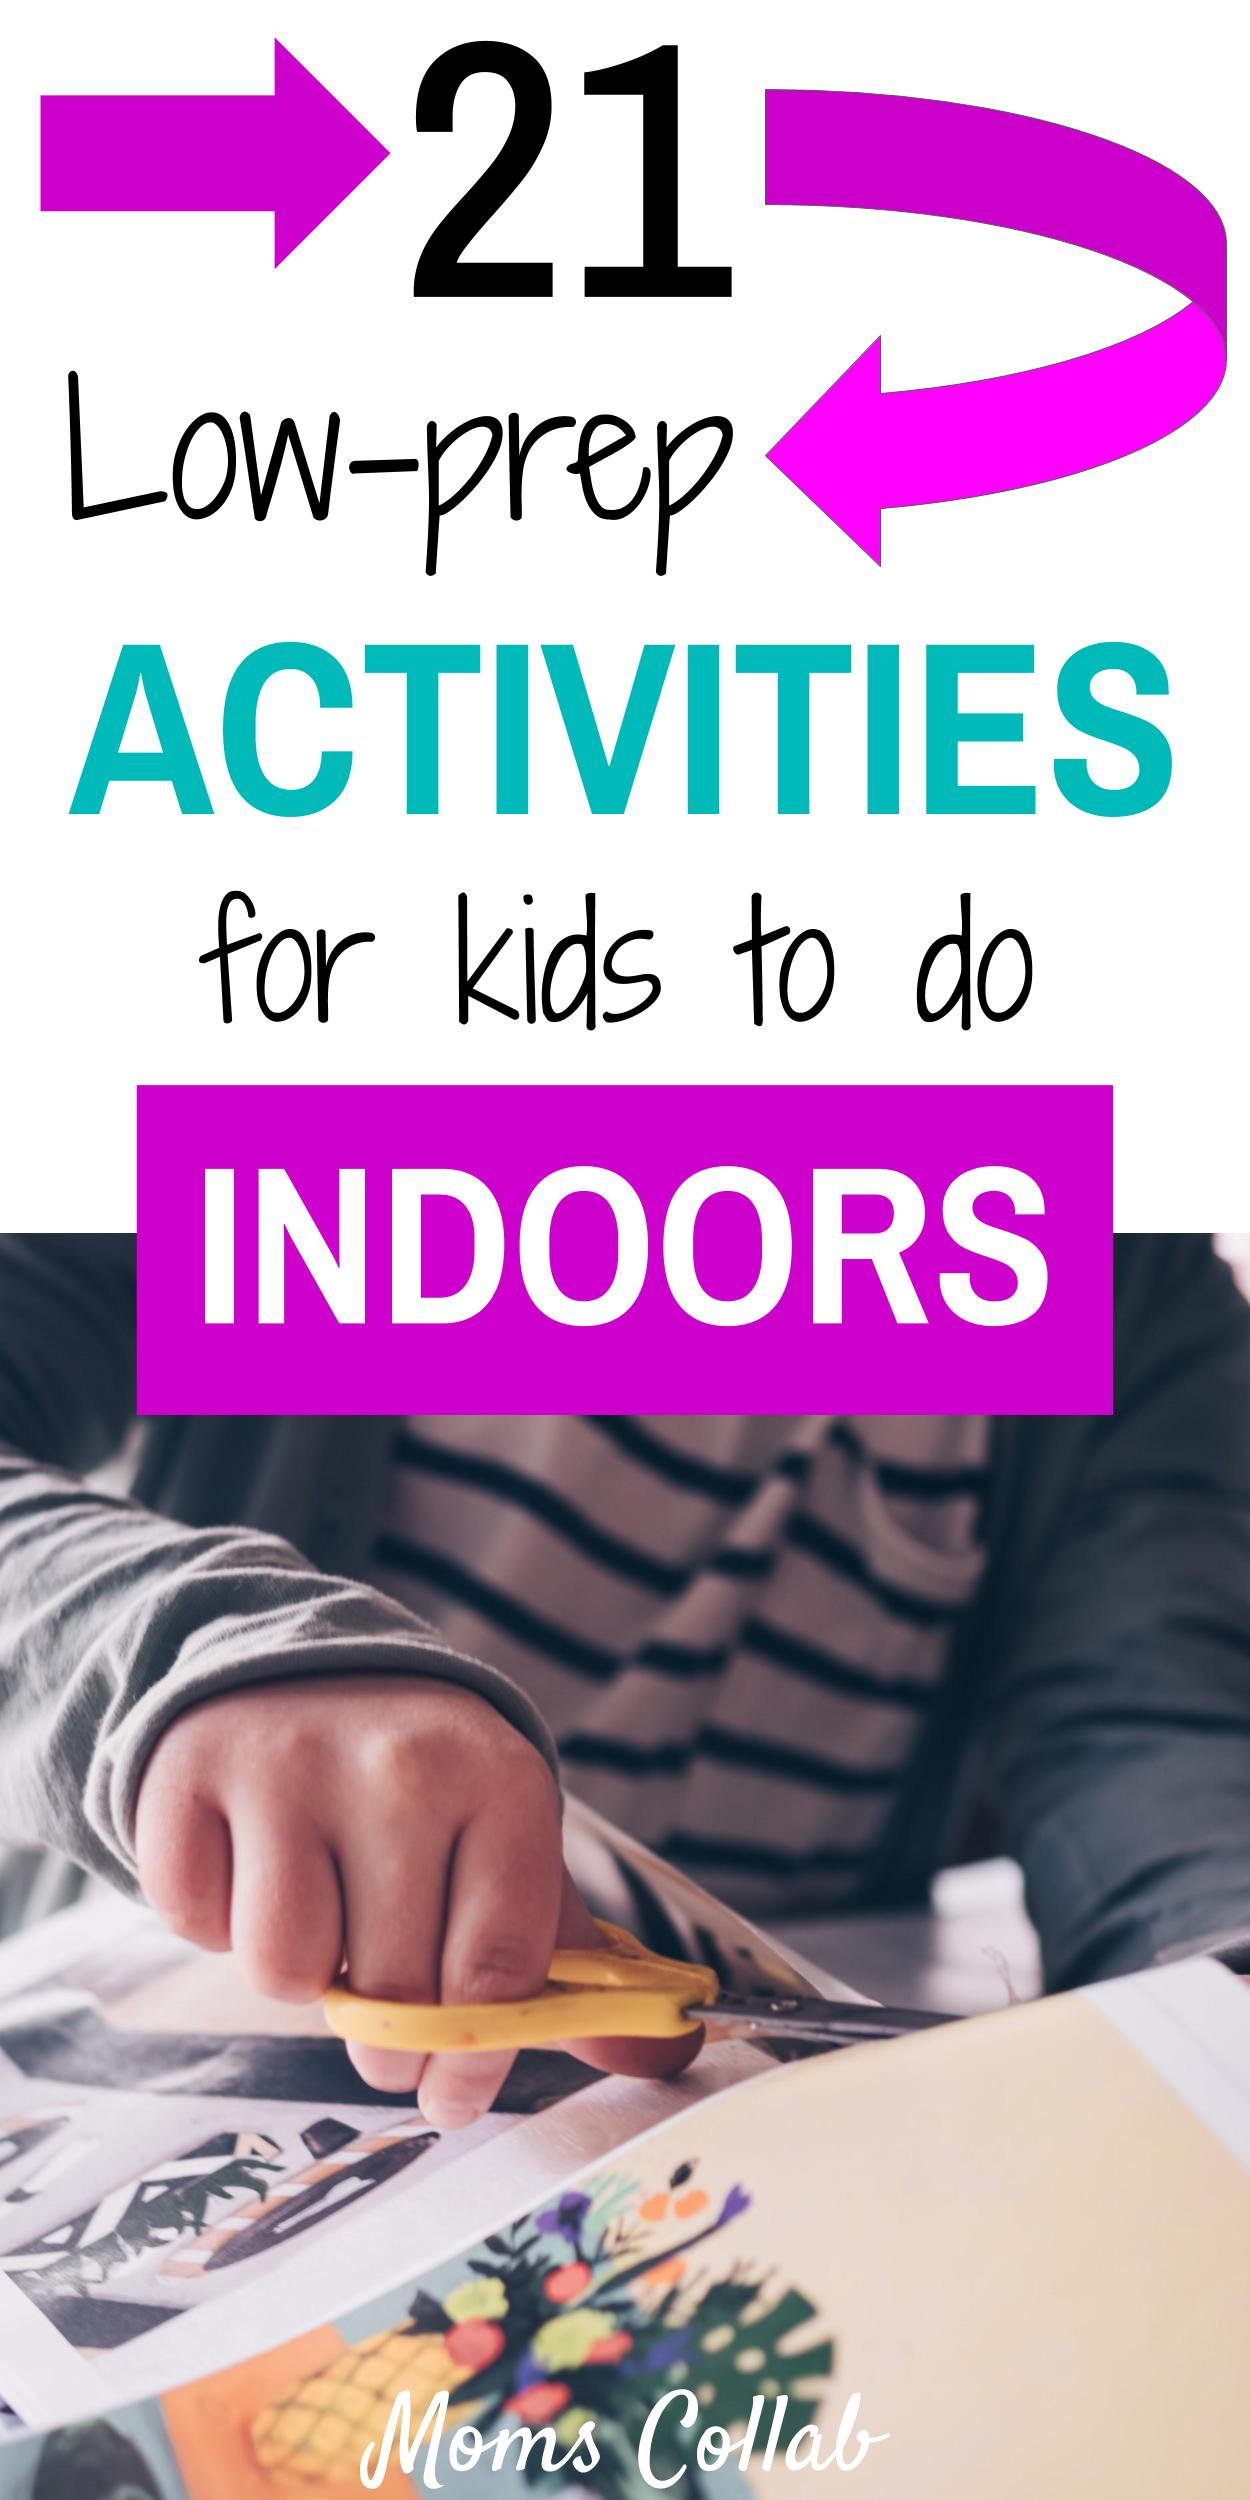 low-prep activities for kids indoor